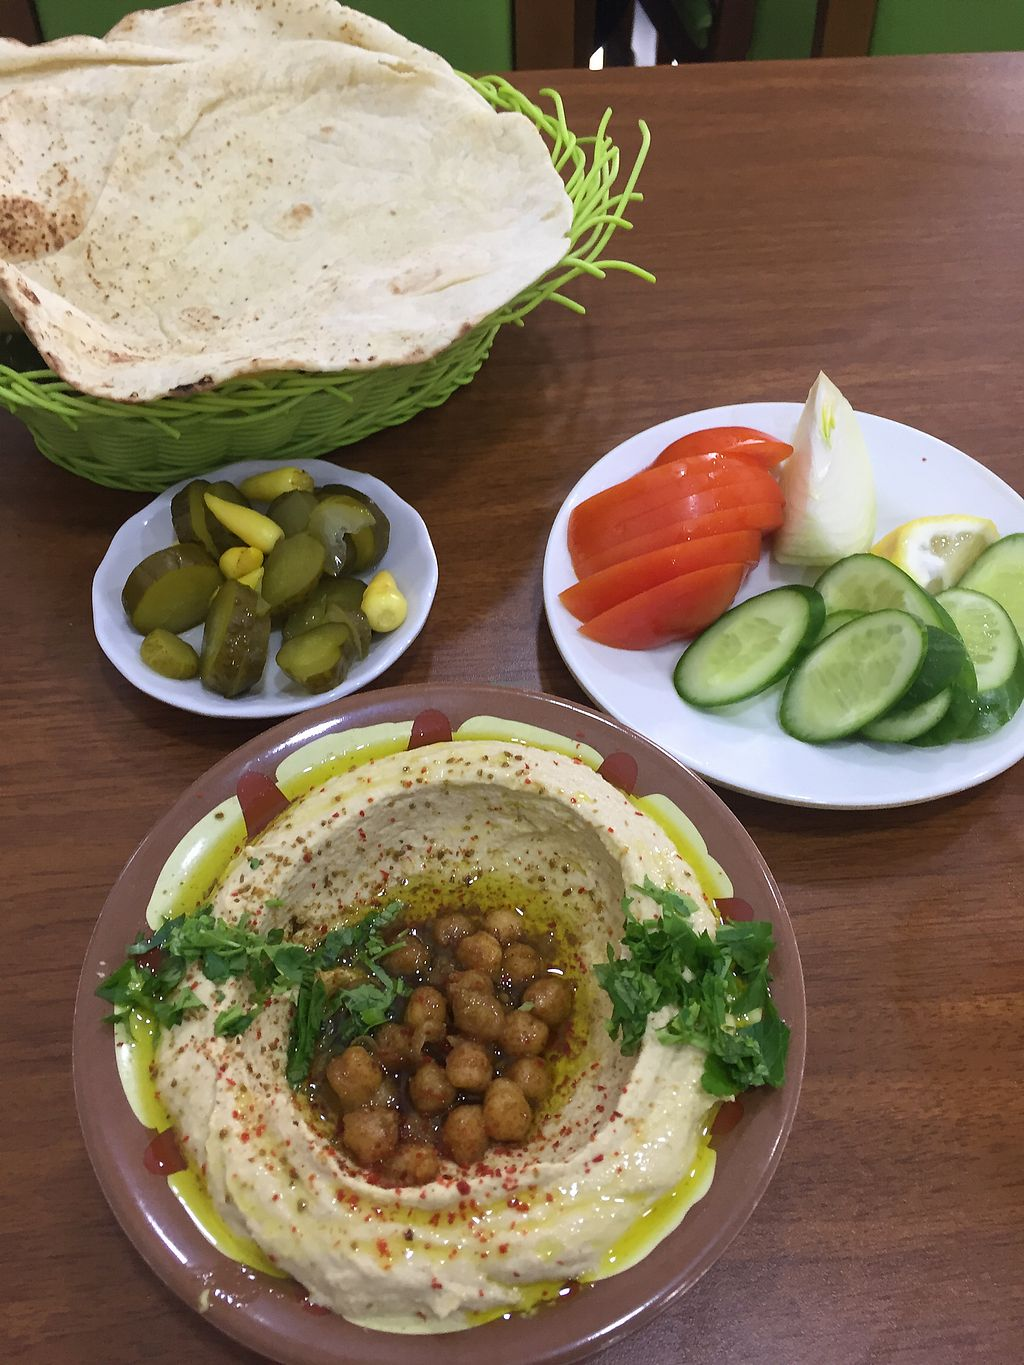 """Photo of Gazze Felafili   by <a href=""""/members/profile/gfilinta"""">gfilinta</a> <br/>Best Humus!  <br/> January 12, 2018  - <a href='/contact/abuse/image/102940/345666'>Report</a>"""